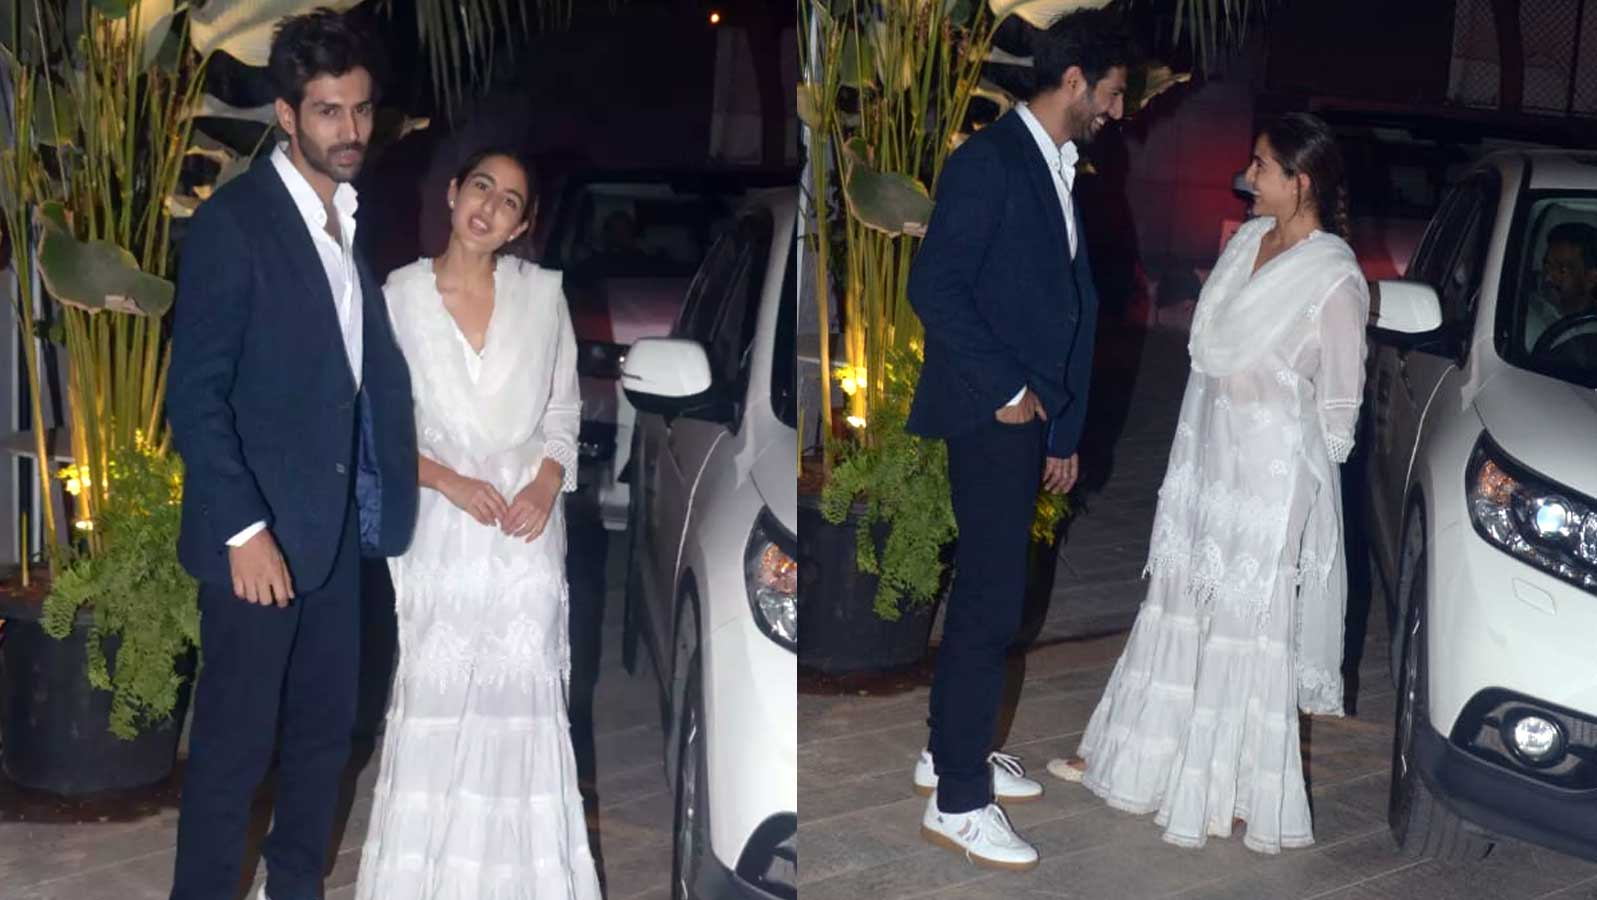 Kartik Aaryan and Sara Ali Khan can't take their eyes off each other as they pose together for paparazzi